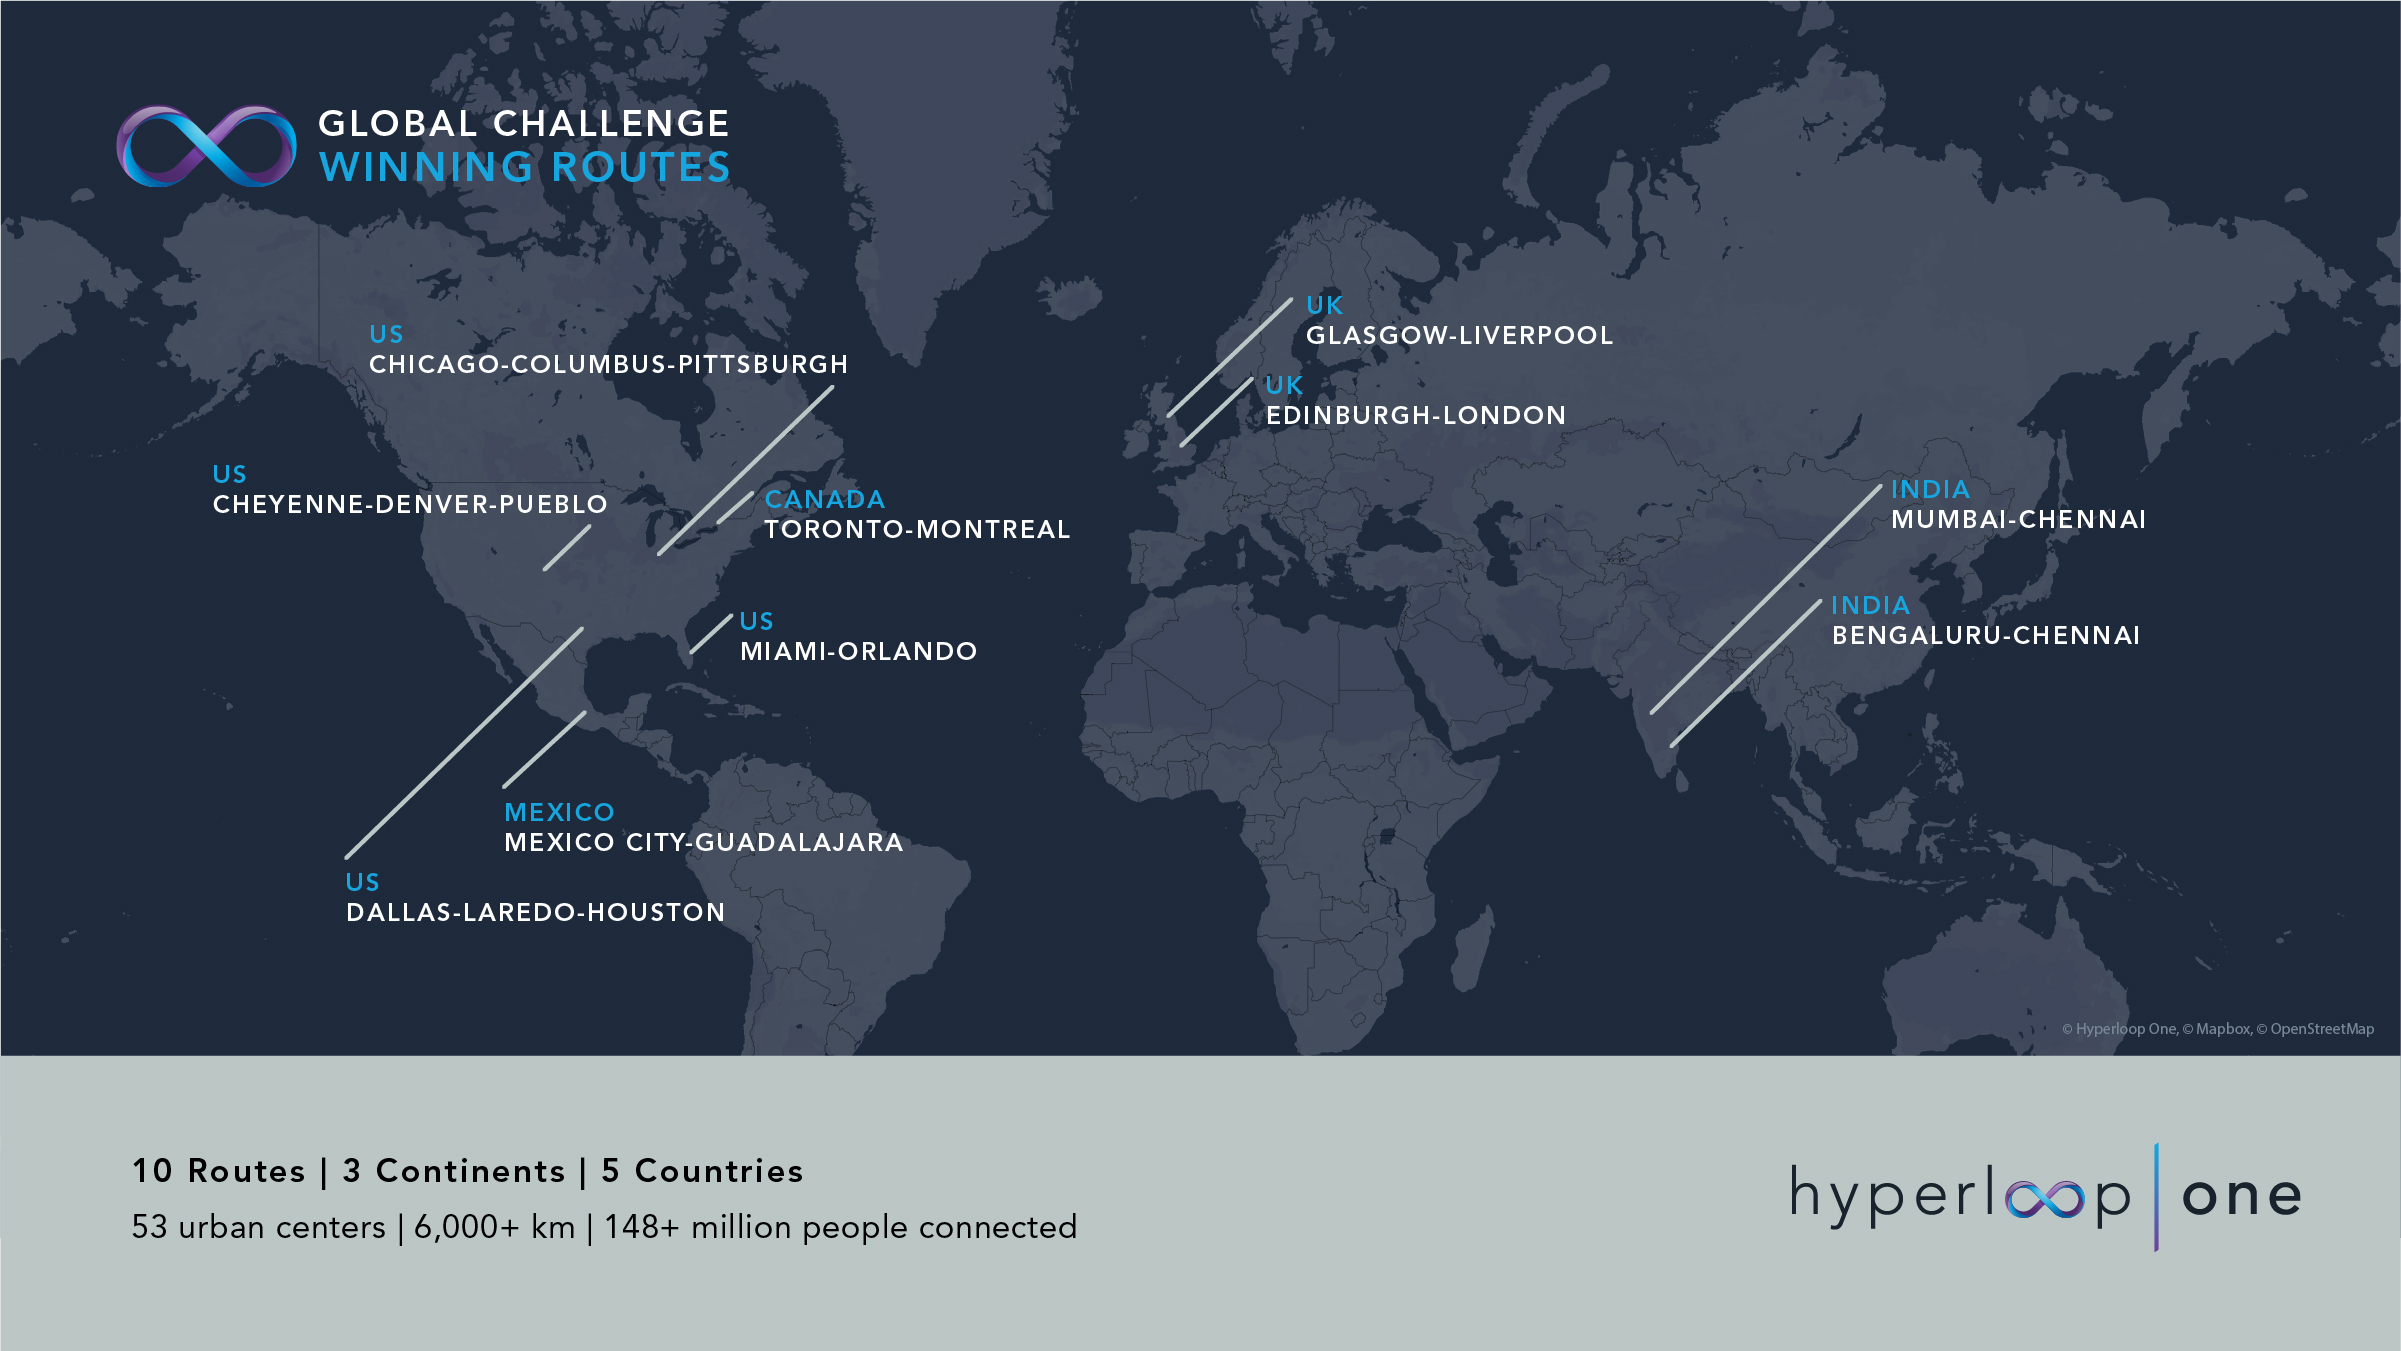 These are the winning routes of the Hyperloop One Global Challenge